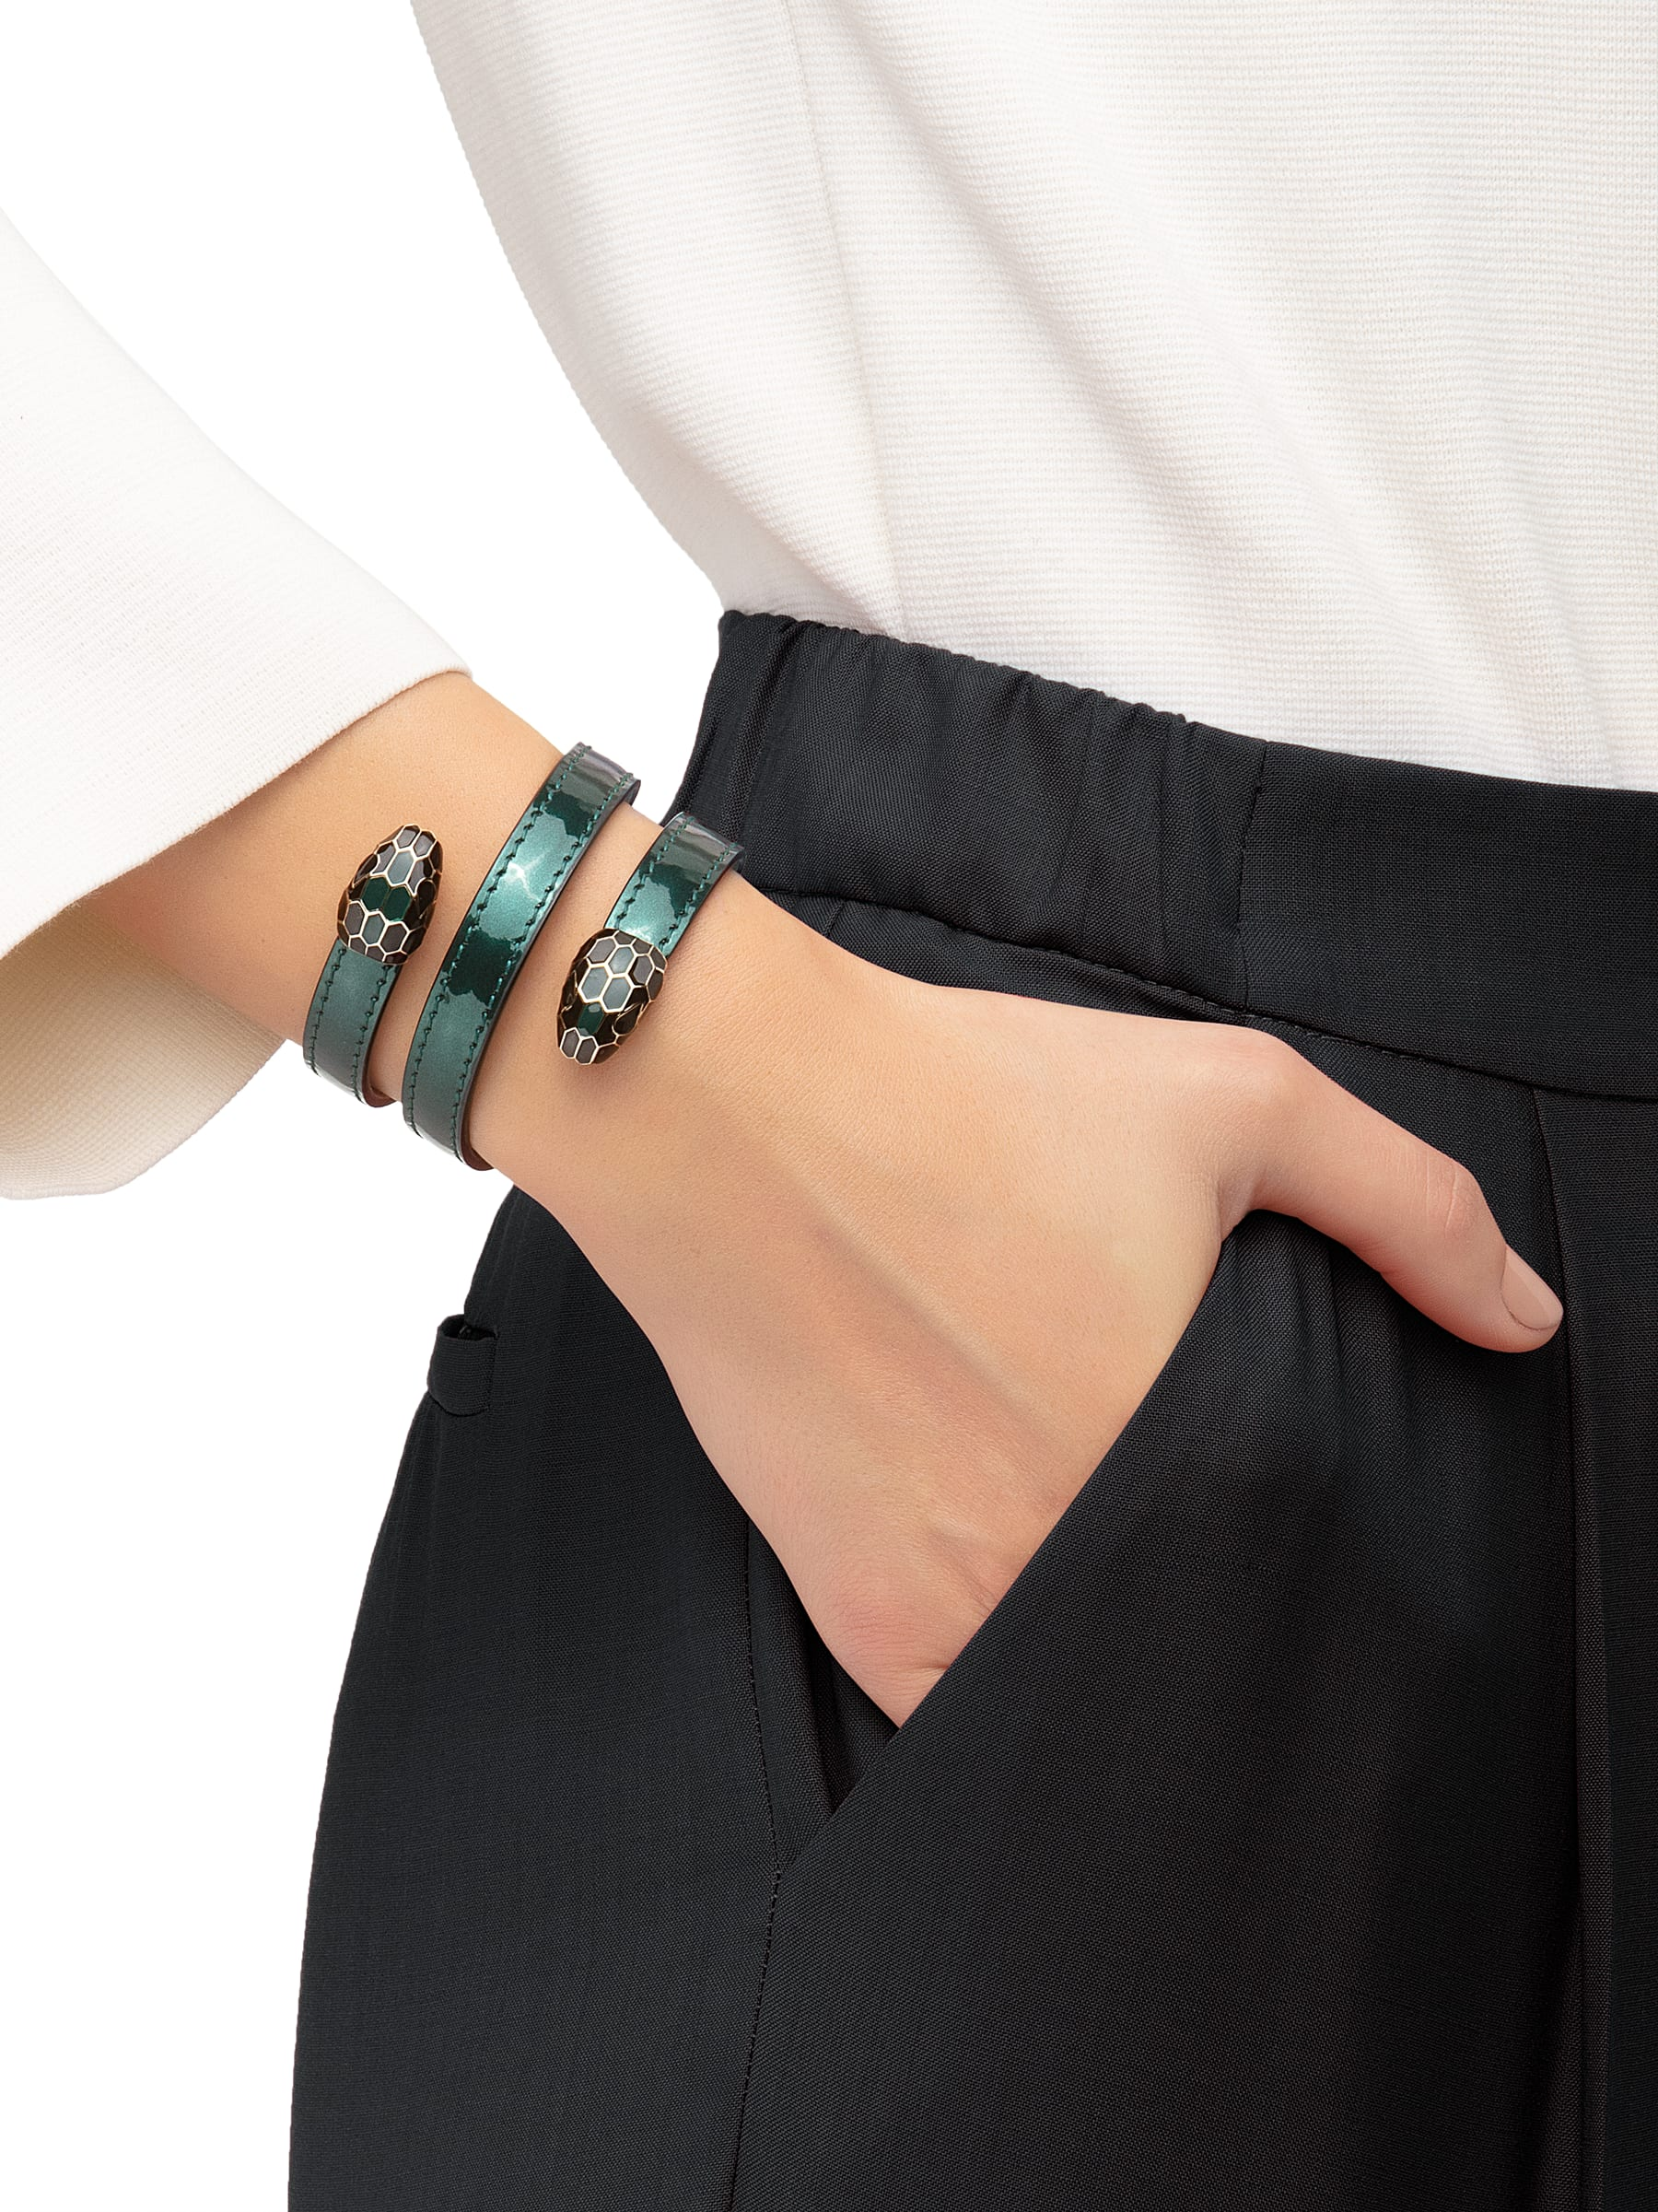 Multi-coiled rigid Cleopatra bracelet in forest emerald brushed metallic calf leather with brass light gold plated hardware. Double tempting Serpenti head finished in black and forest emerald enamel. Cleopatra-BMCL-FE image 2